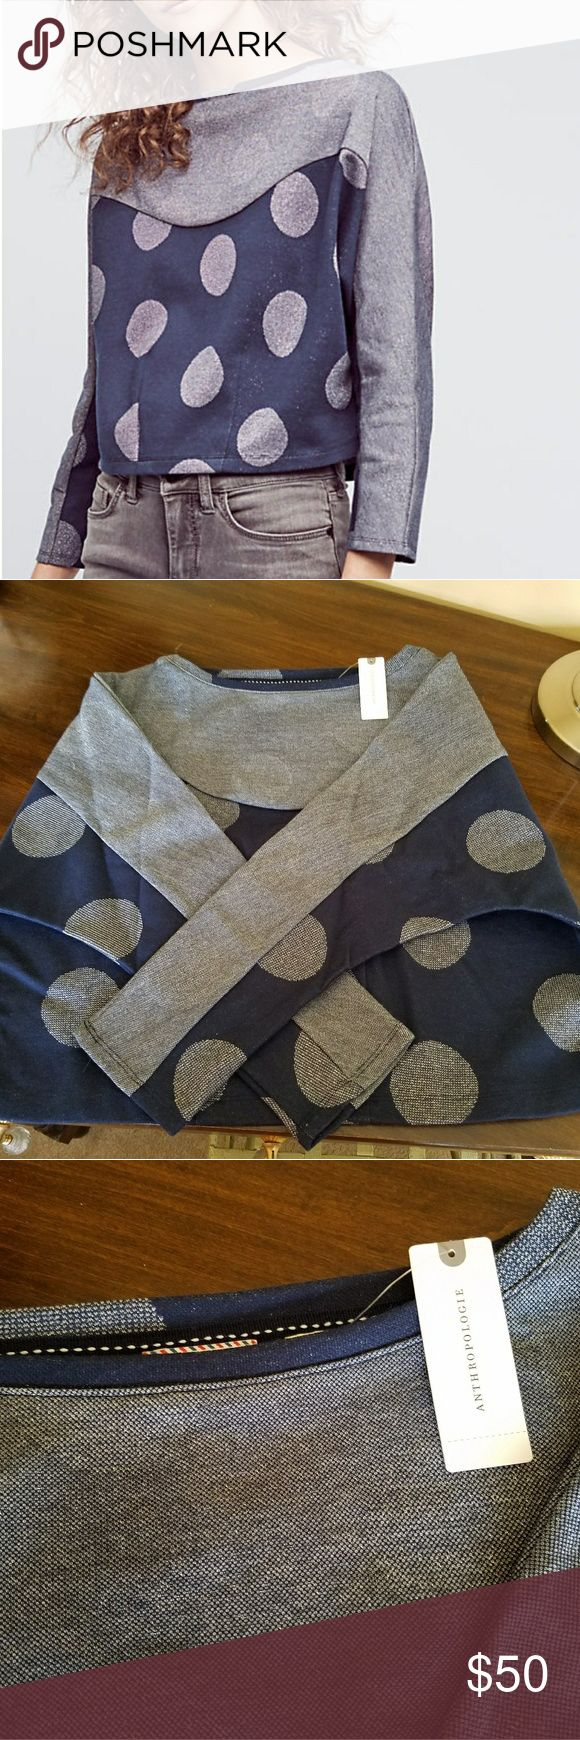 Navy and Silver Polka Dot Cropped Sweatshirt Brand new from anthropologie Anthropologie Tops Sweatshirts & Hoodies